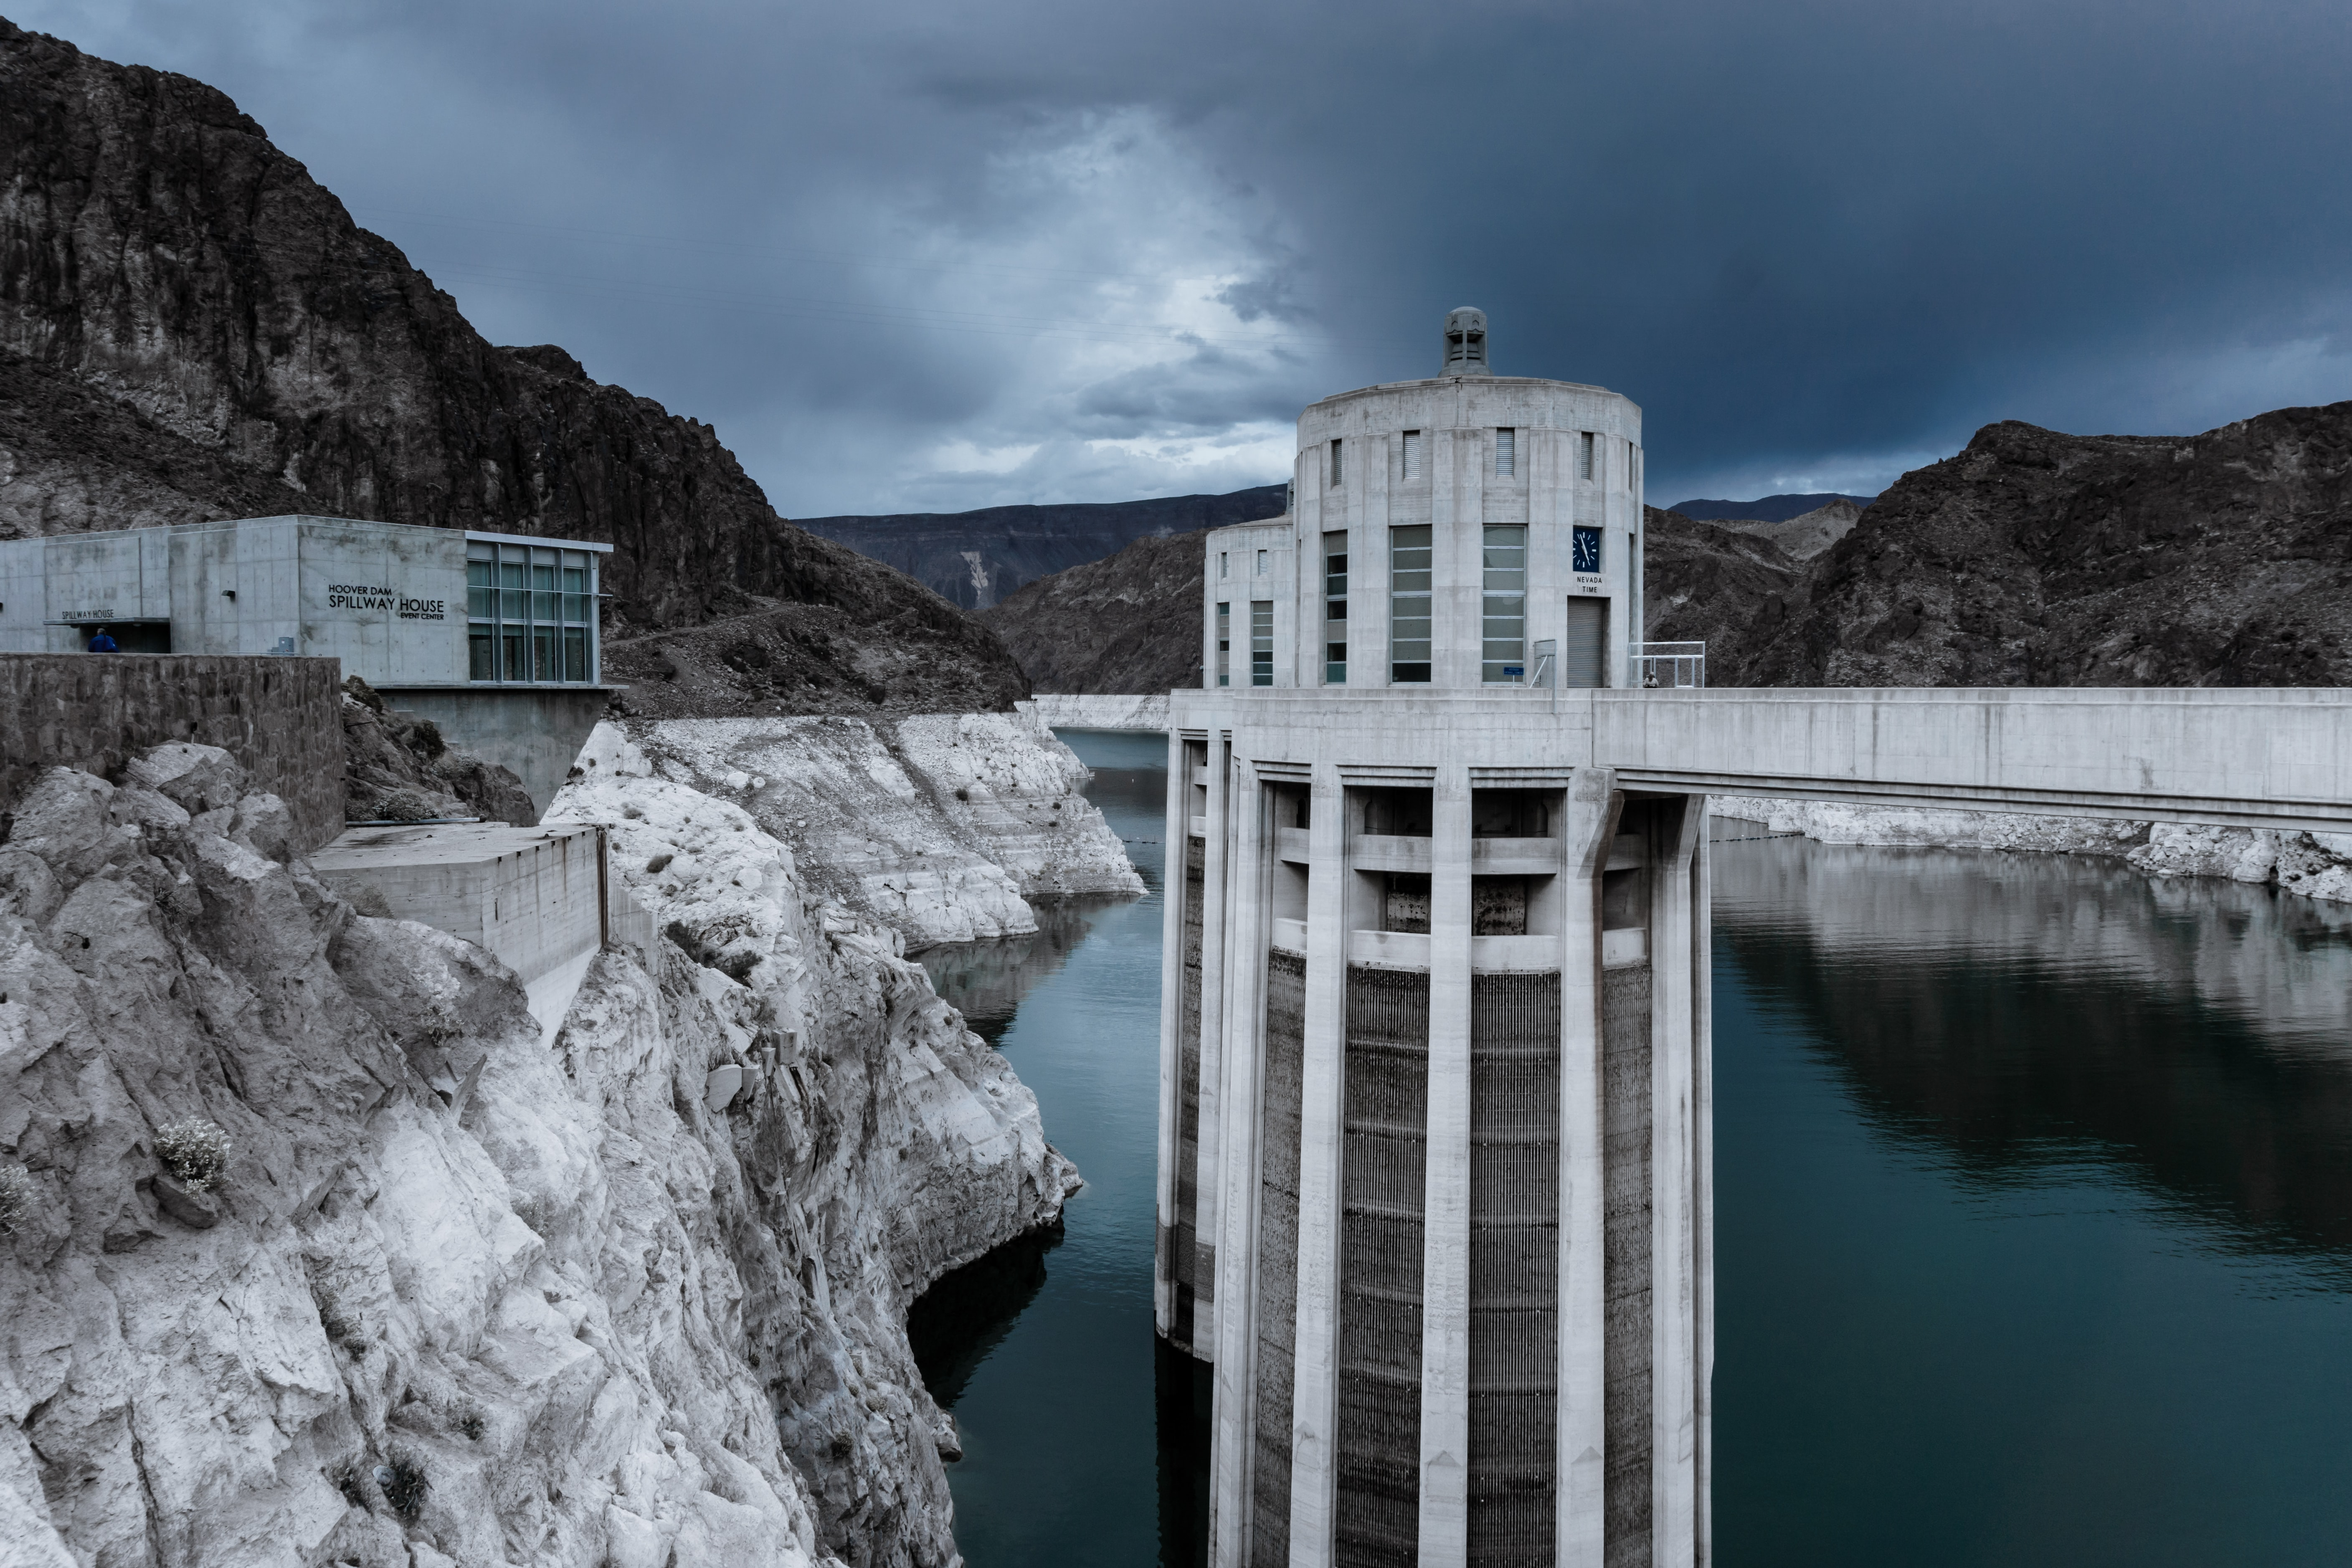 dam under dark clouds